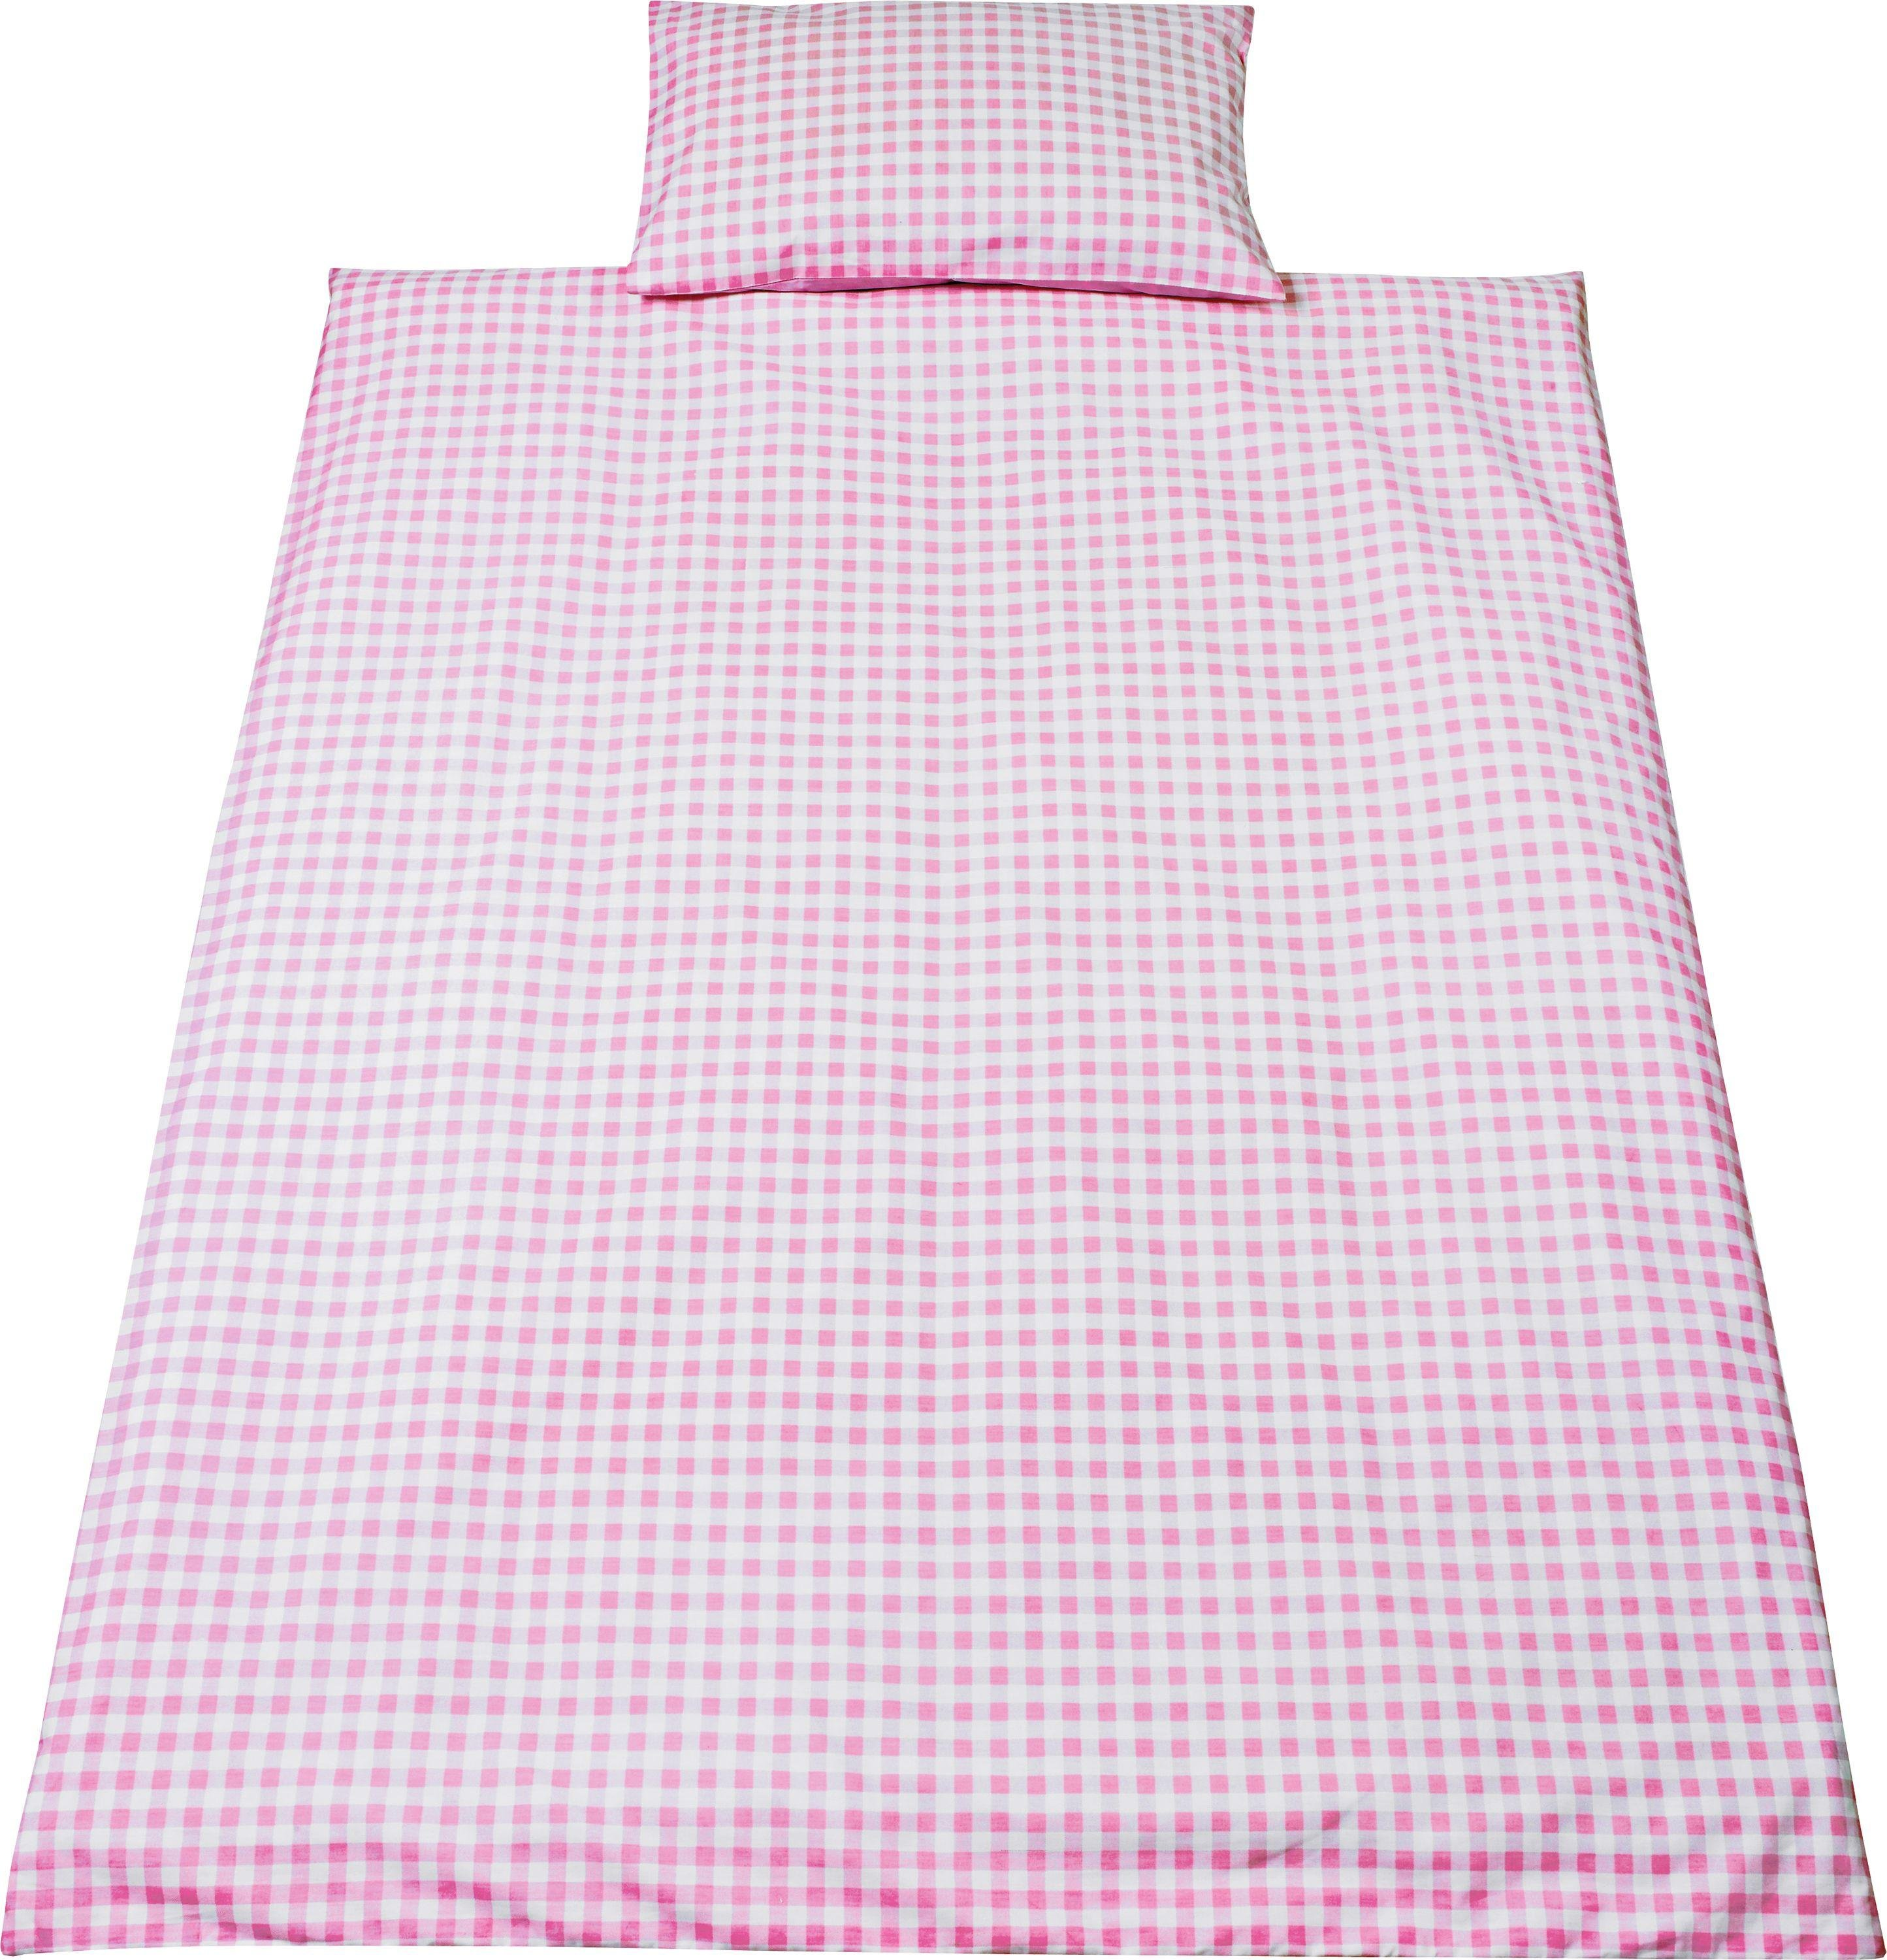 Sale On Saplings Pink Gingham Cot Bed Duvet Cover